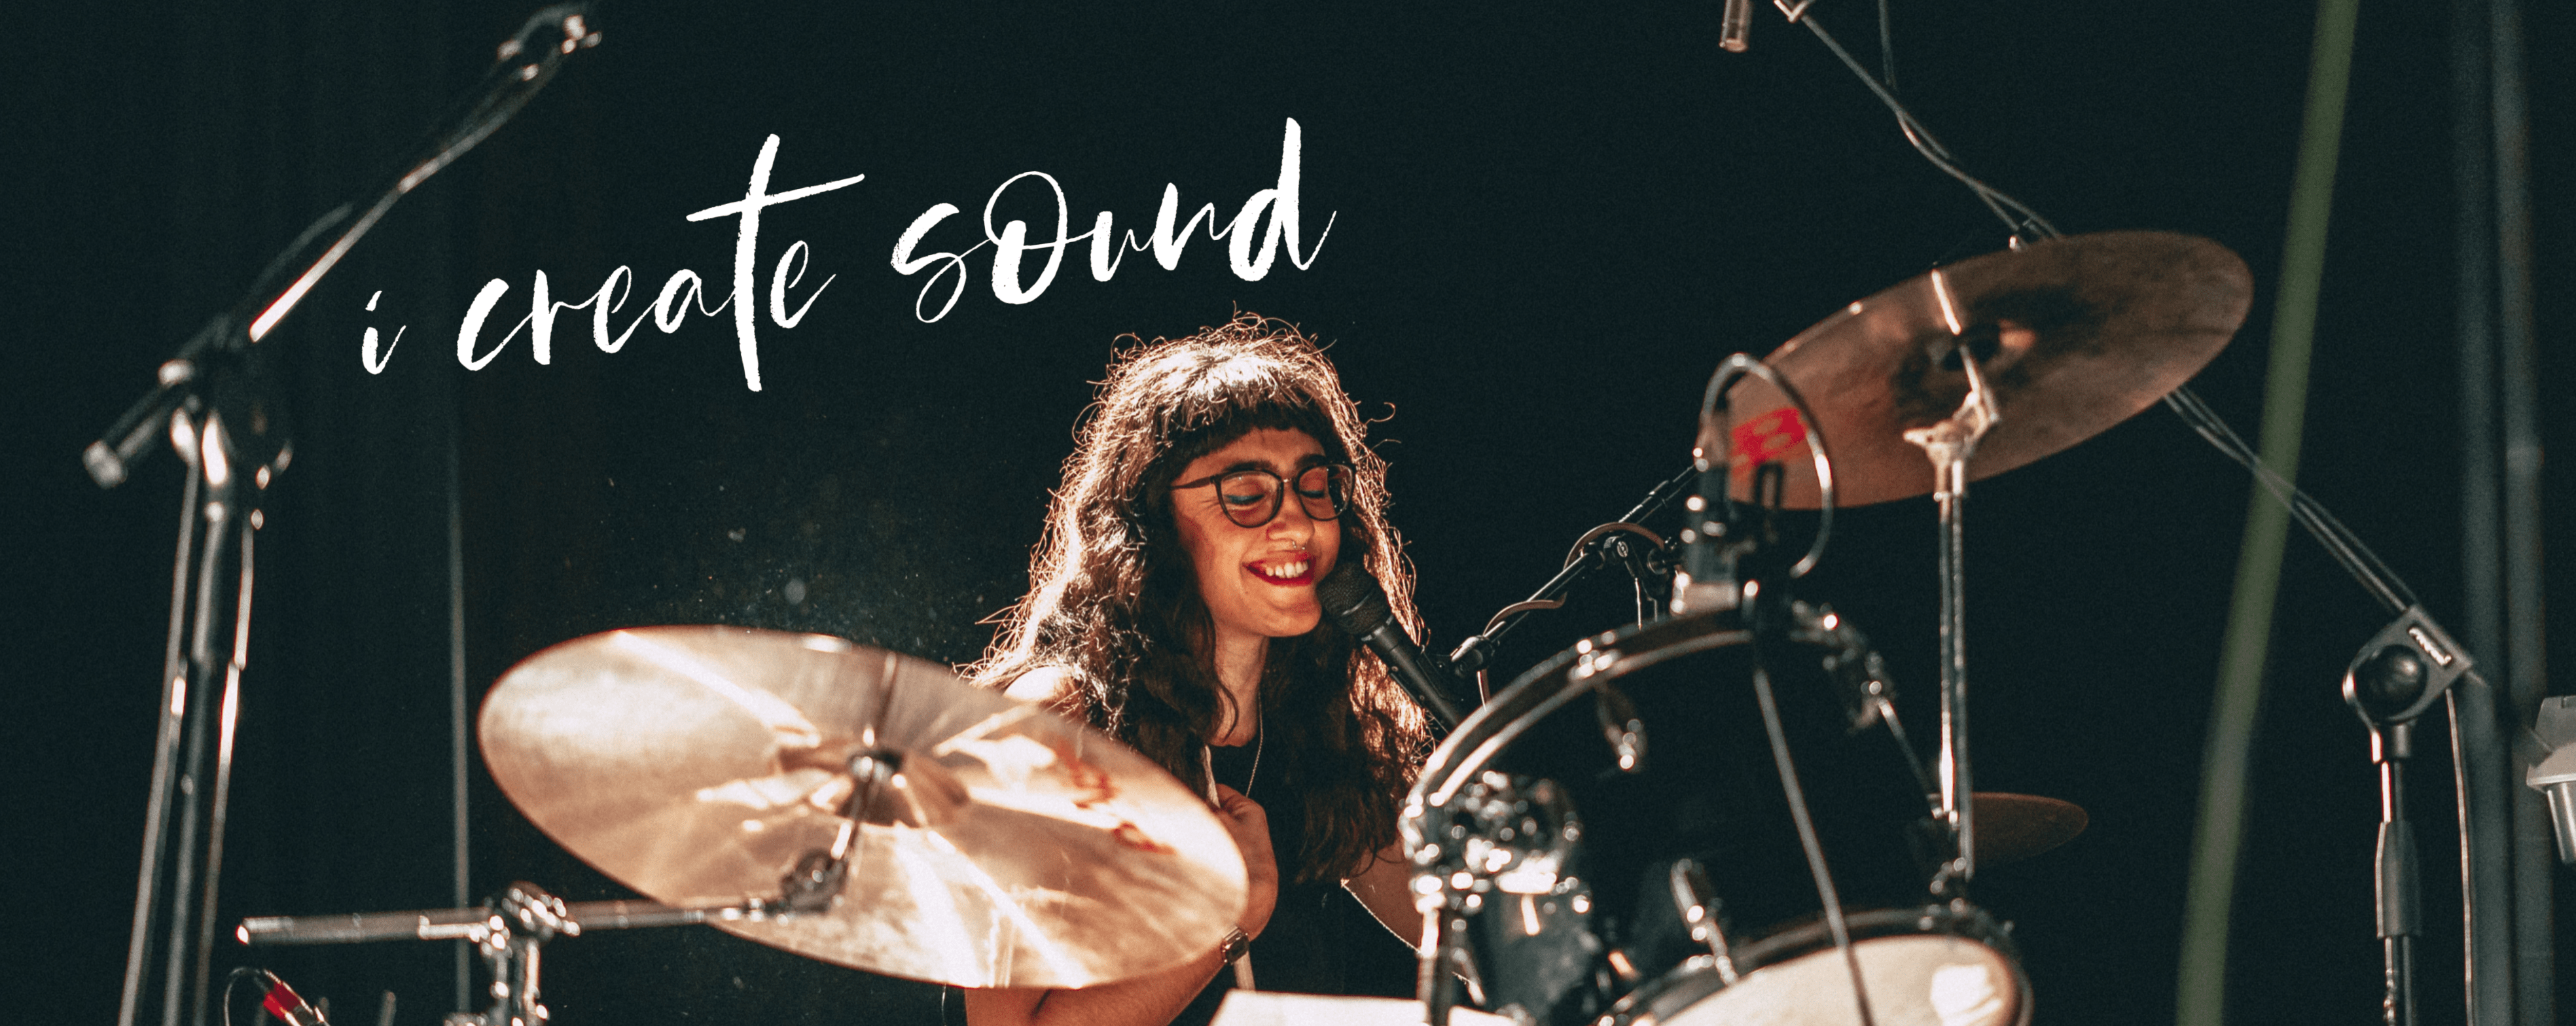 Girl Playing Drums: Music Scholarships for Creative High School Students